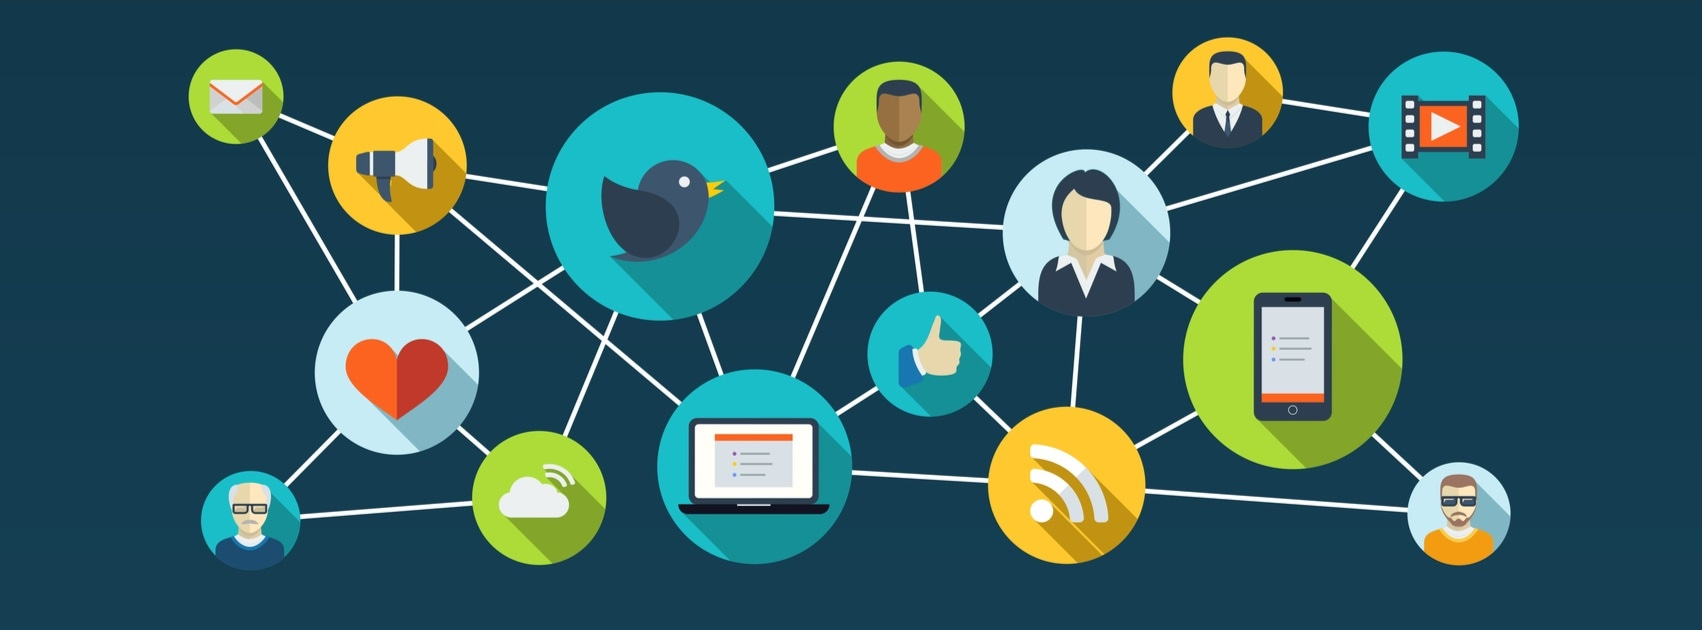 The Benefits of Paid Social Media Marketing